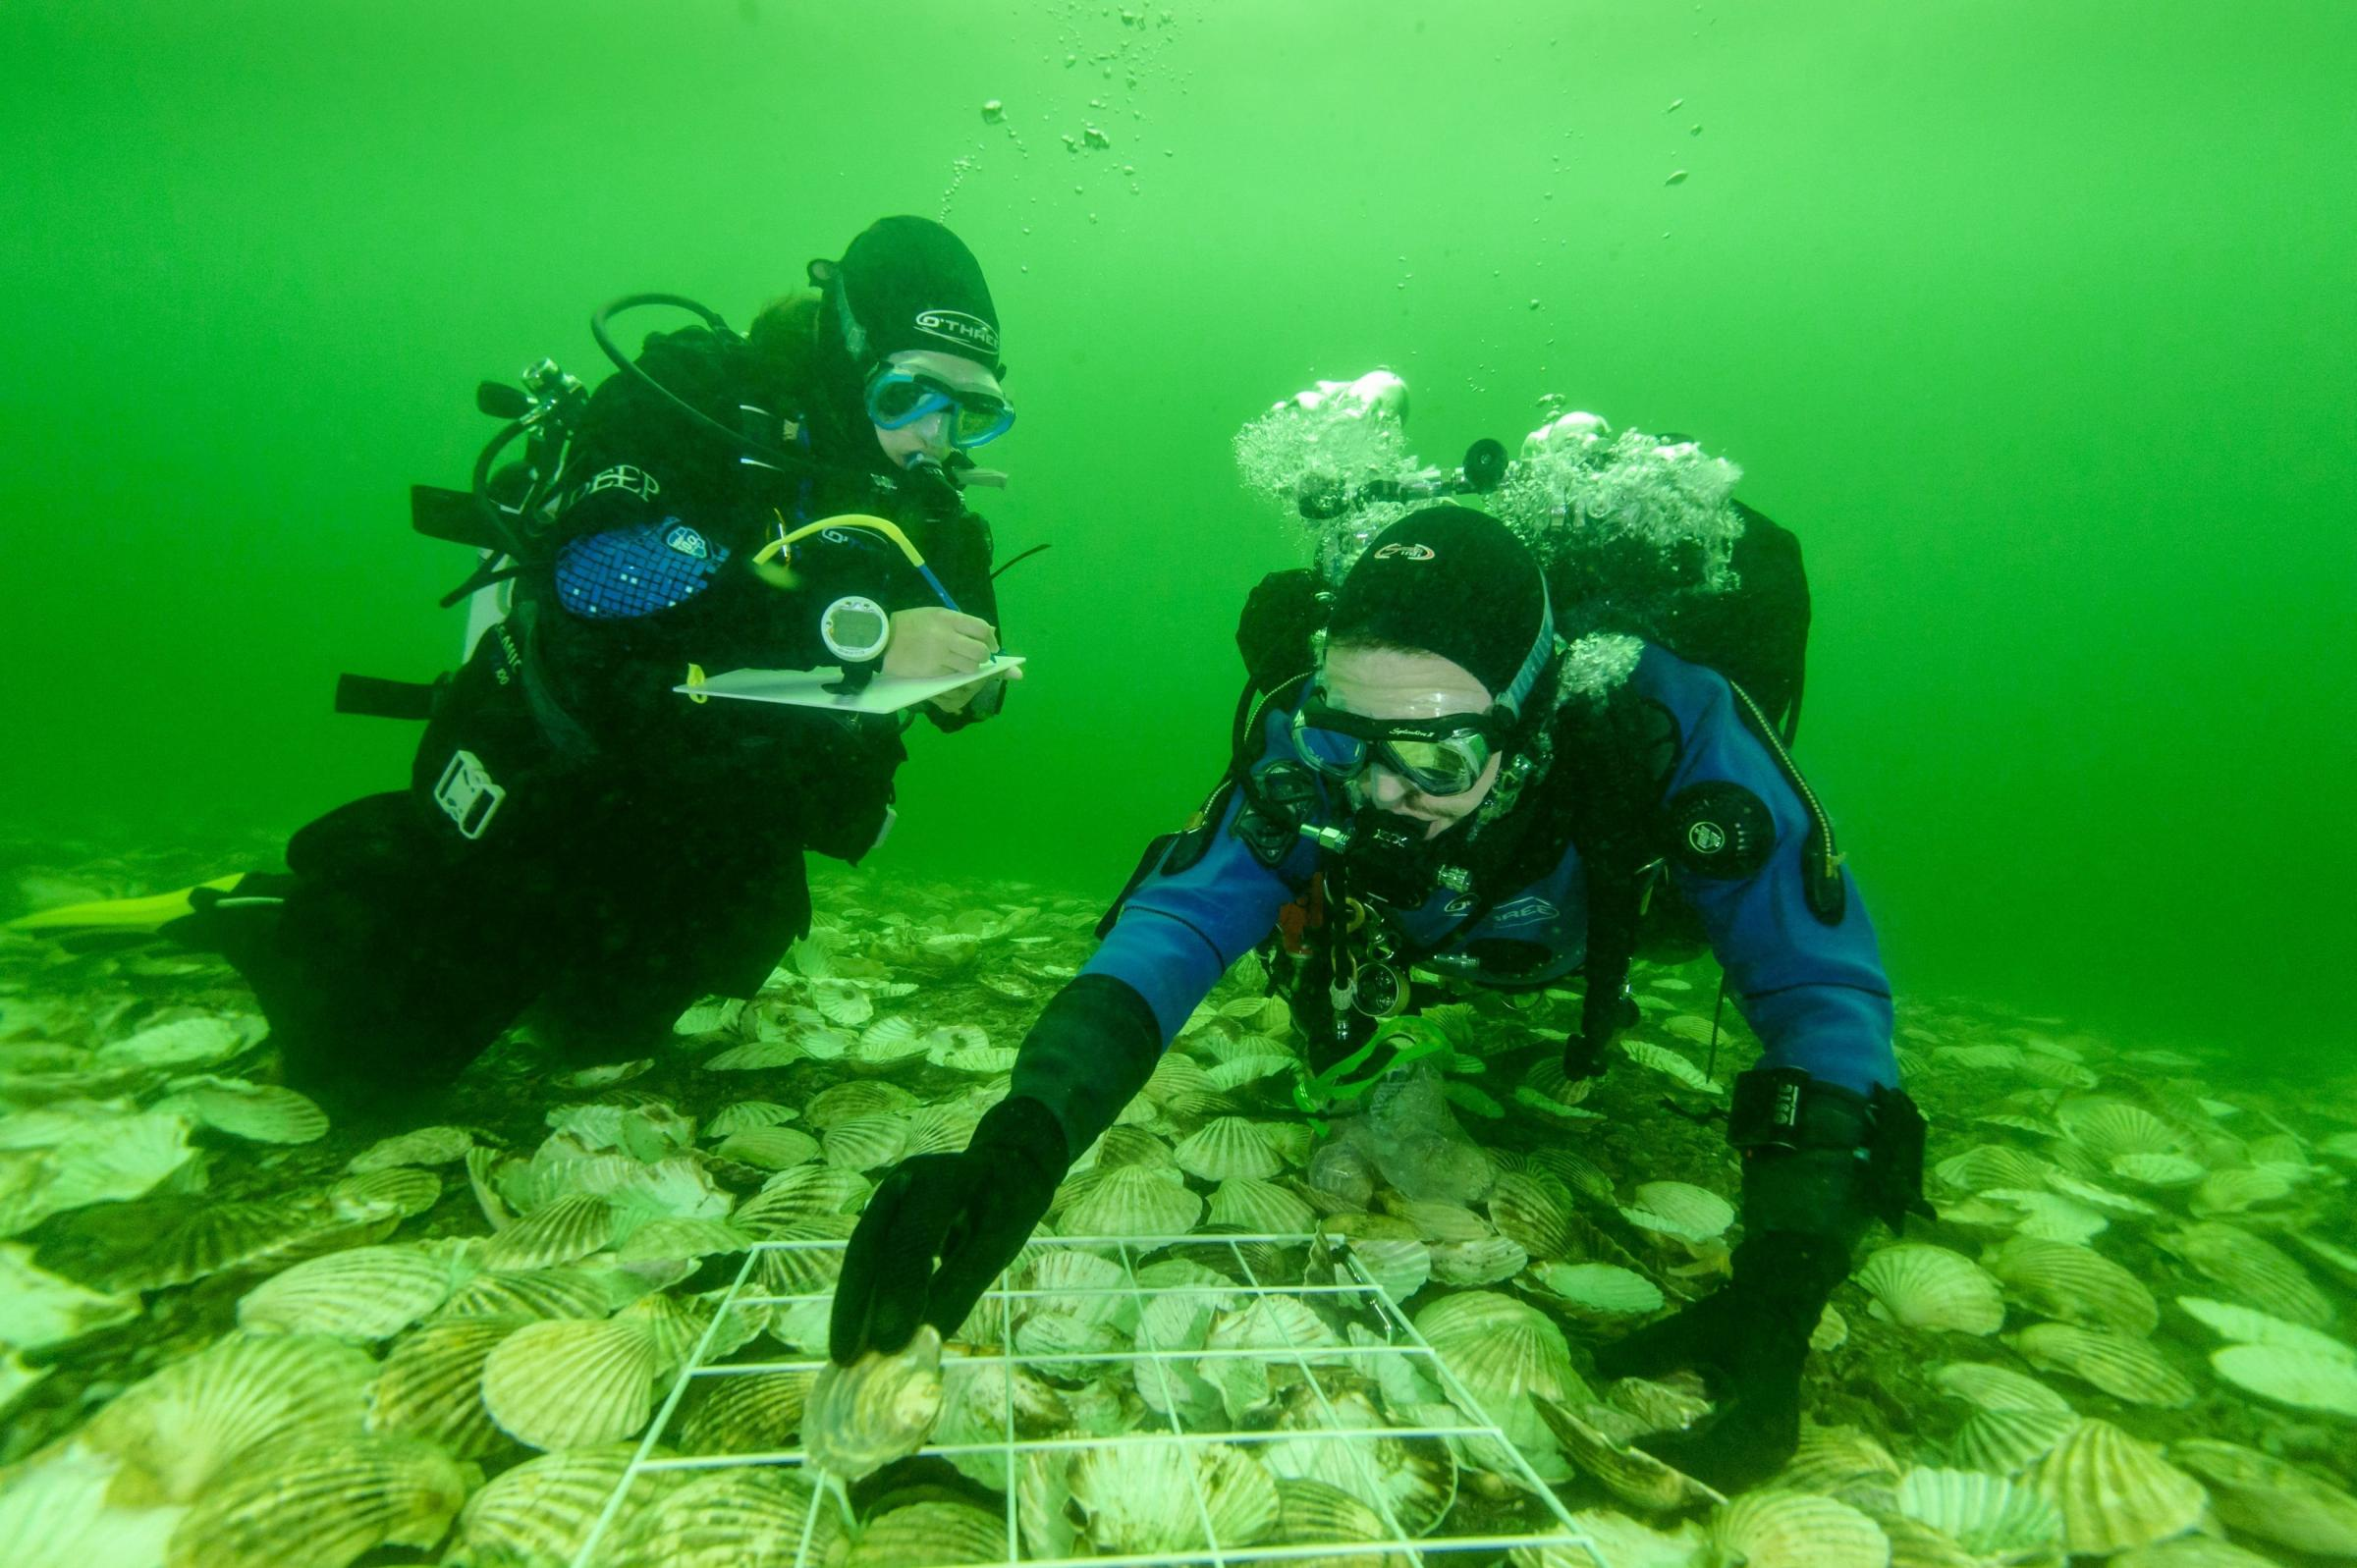 Groundbreaking move sees native oyster reefs return to Dornoch Firth for the first time in more than 100 years